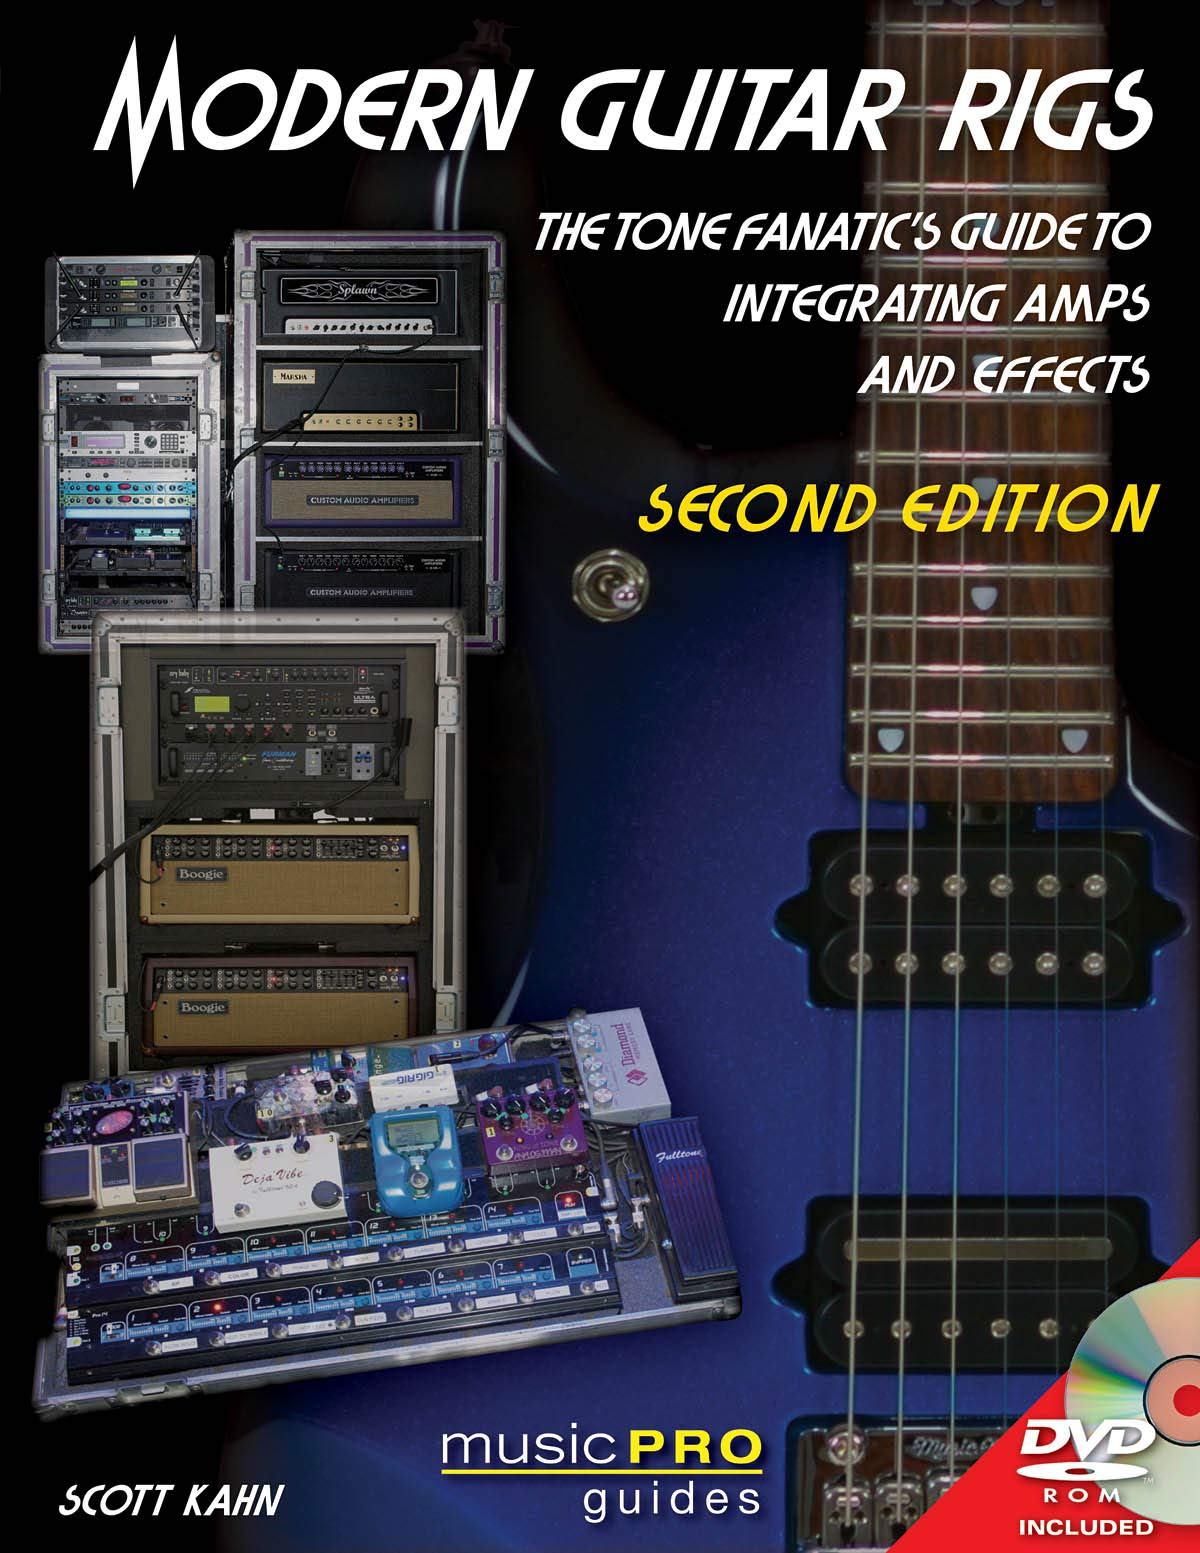 Modern Guitar Rigs  The Tone Fanatic's Guide To Integrating Amps And Effects  With DVD   Music Pro Guides